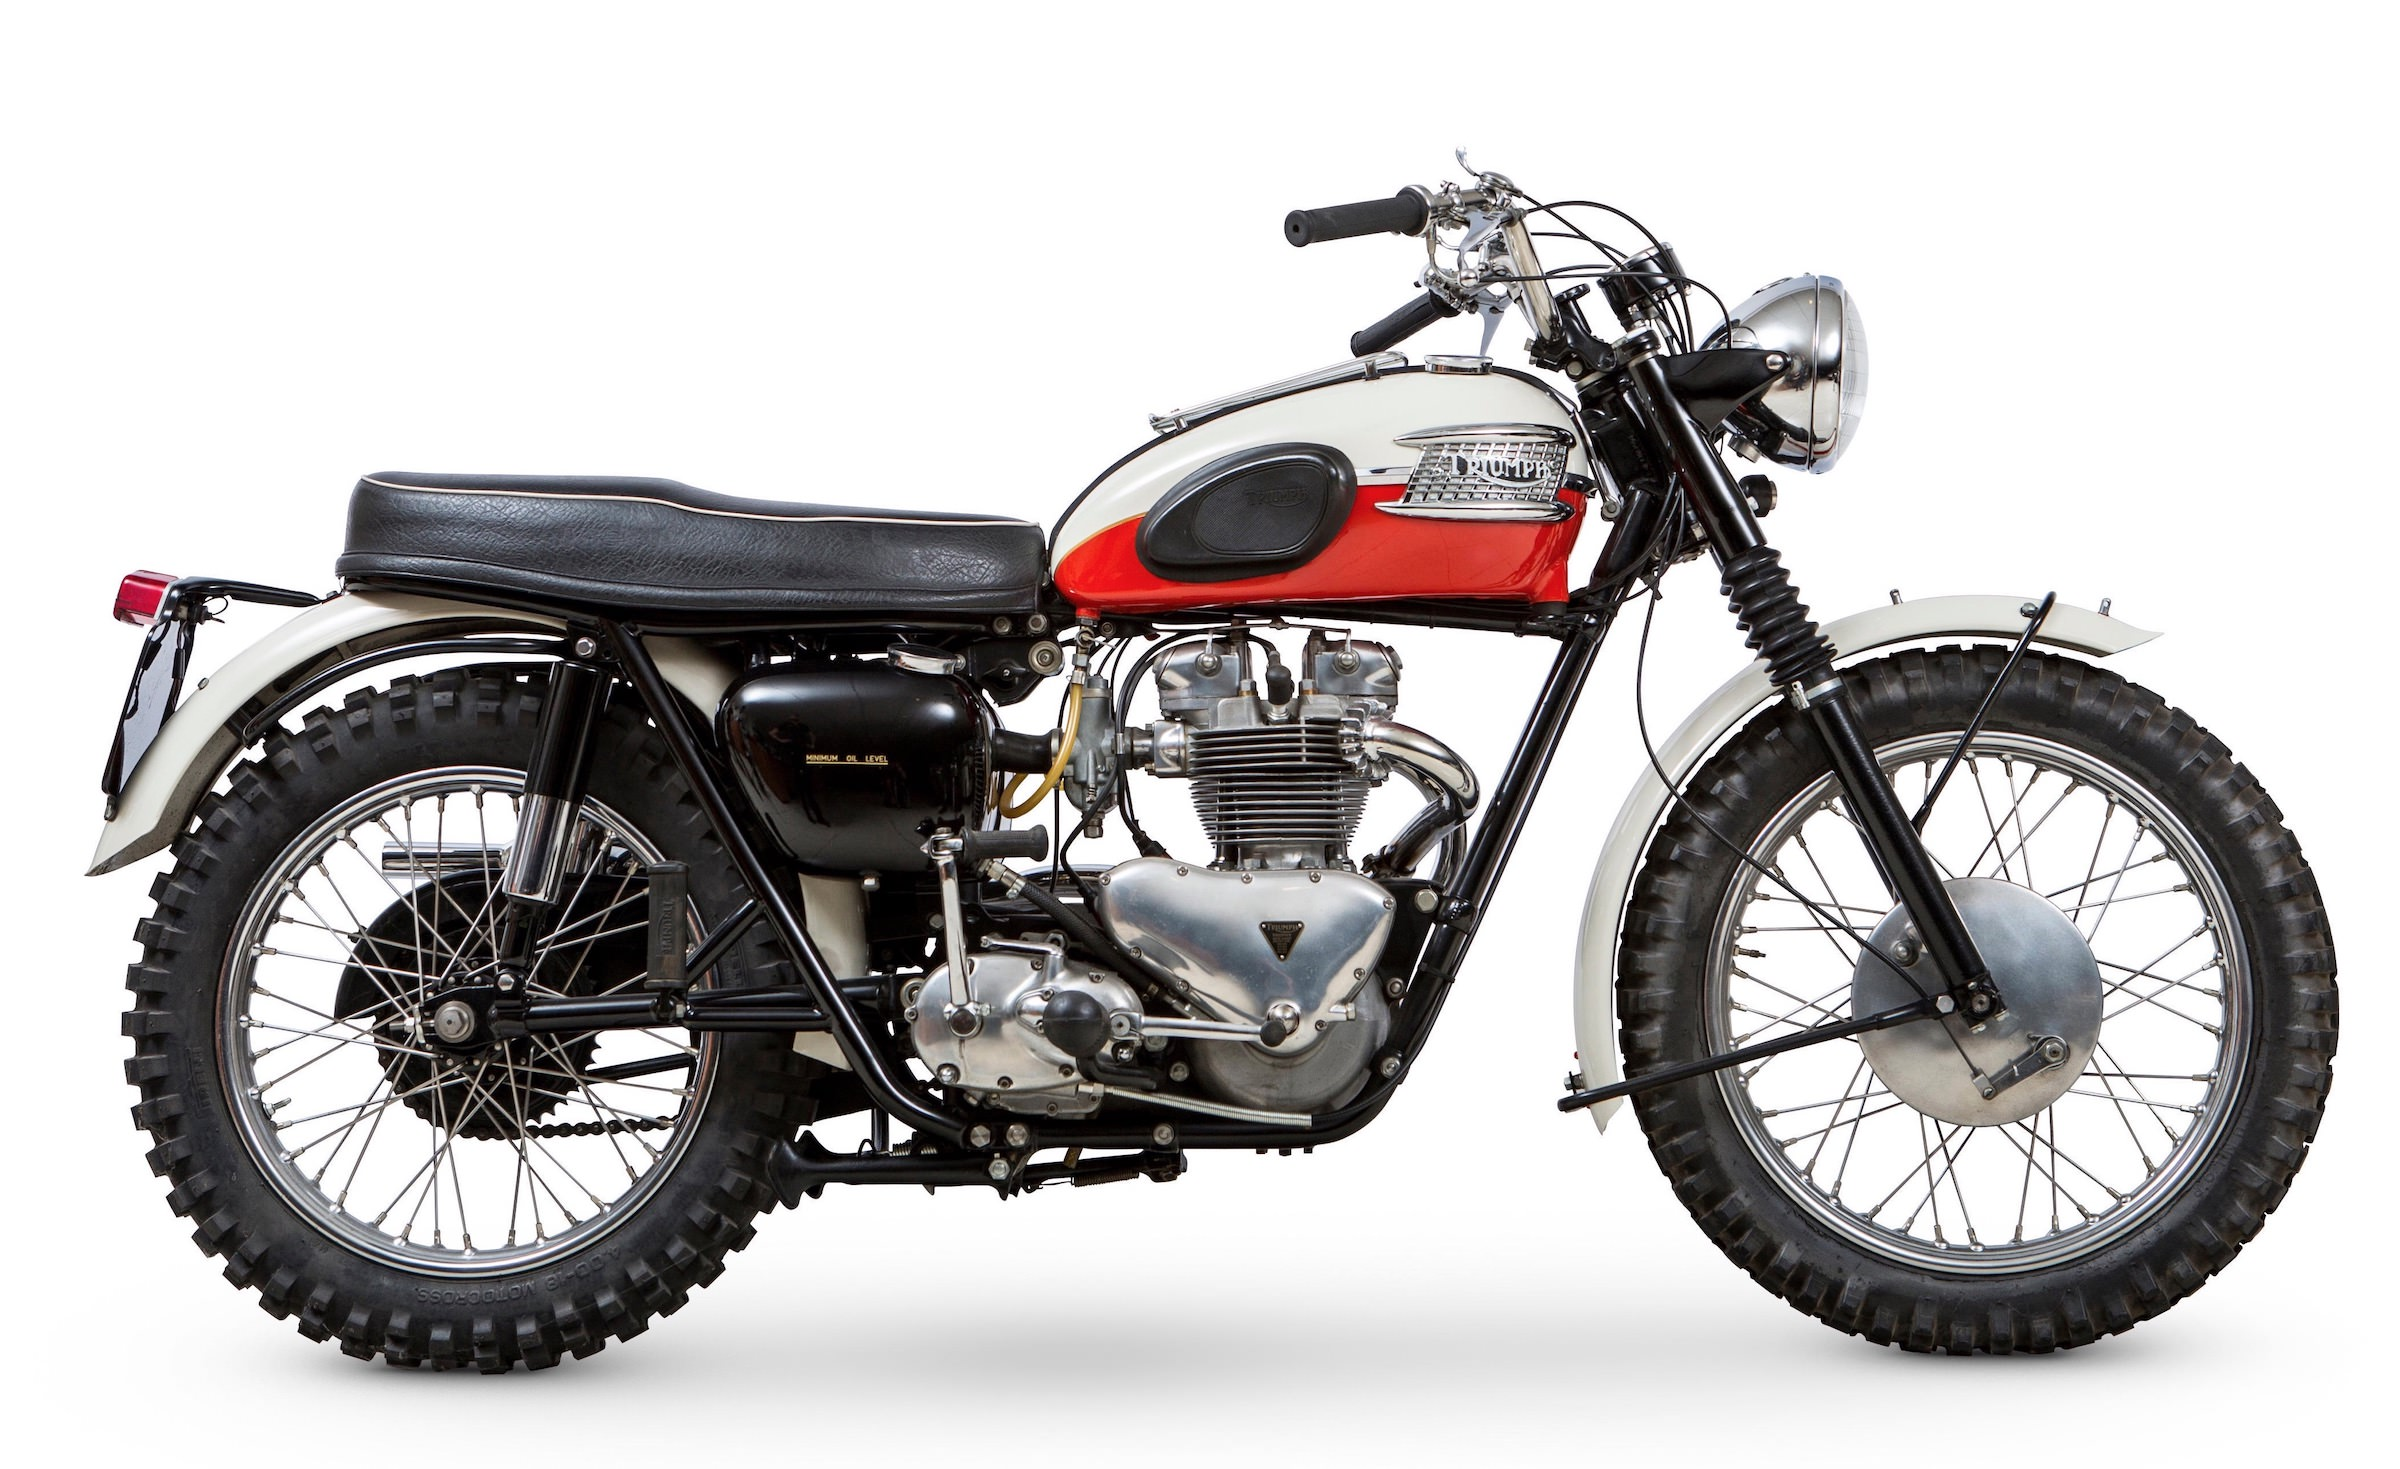 1960 Triumph Tr6 Trophy The Iconic Desert Sled